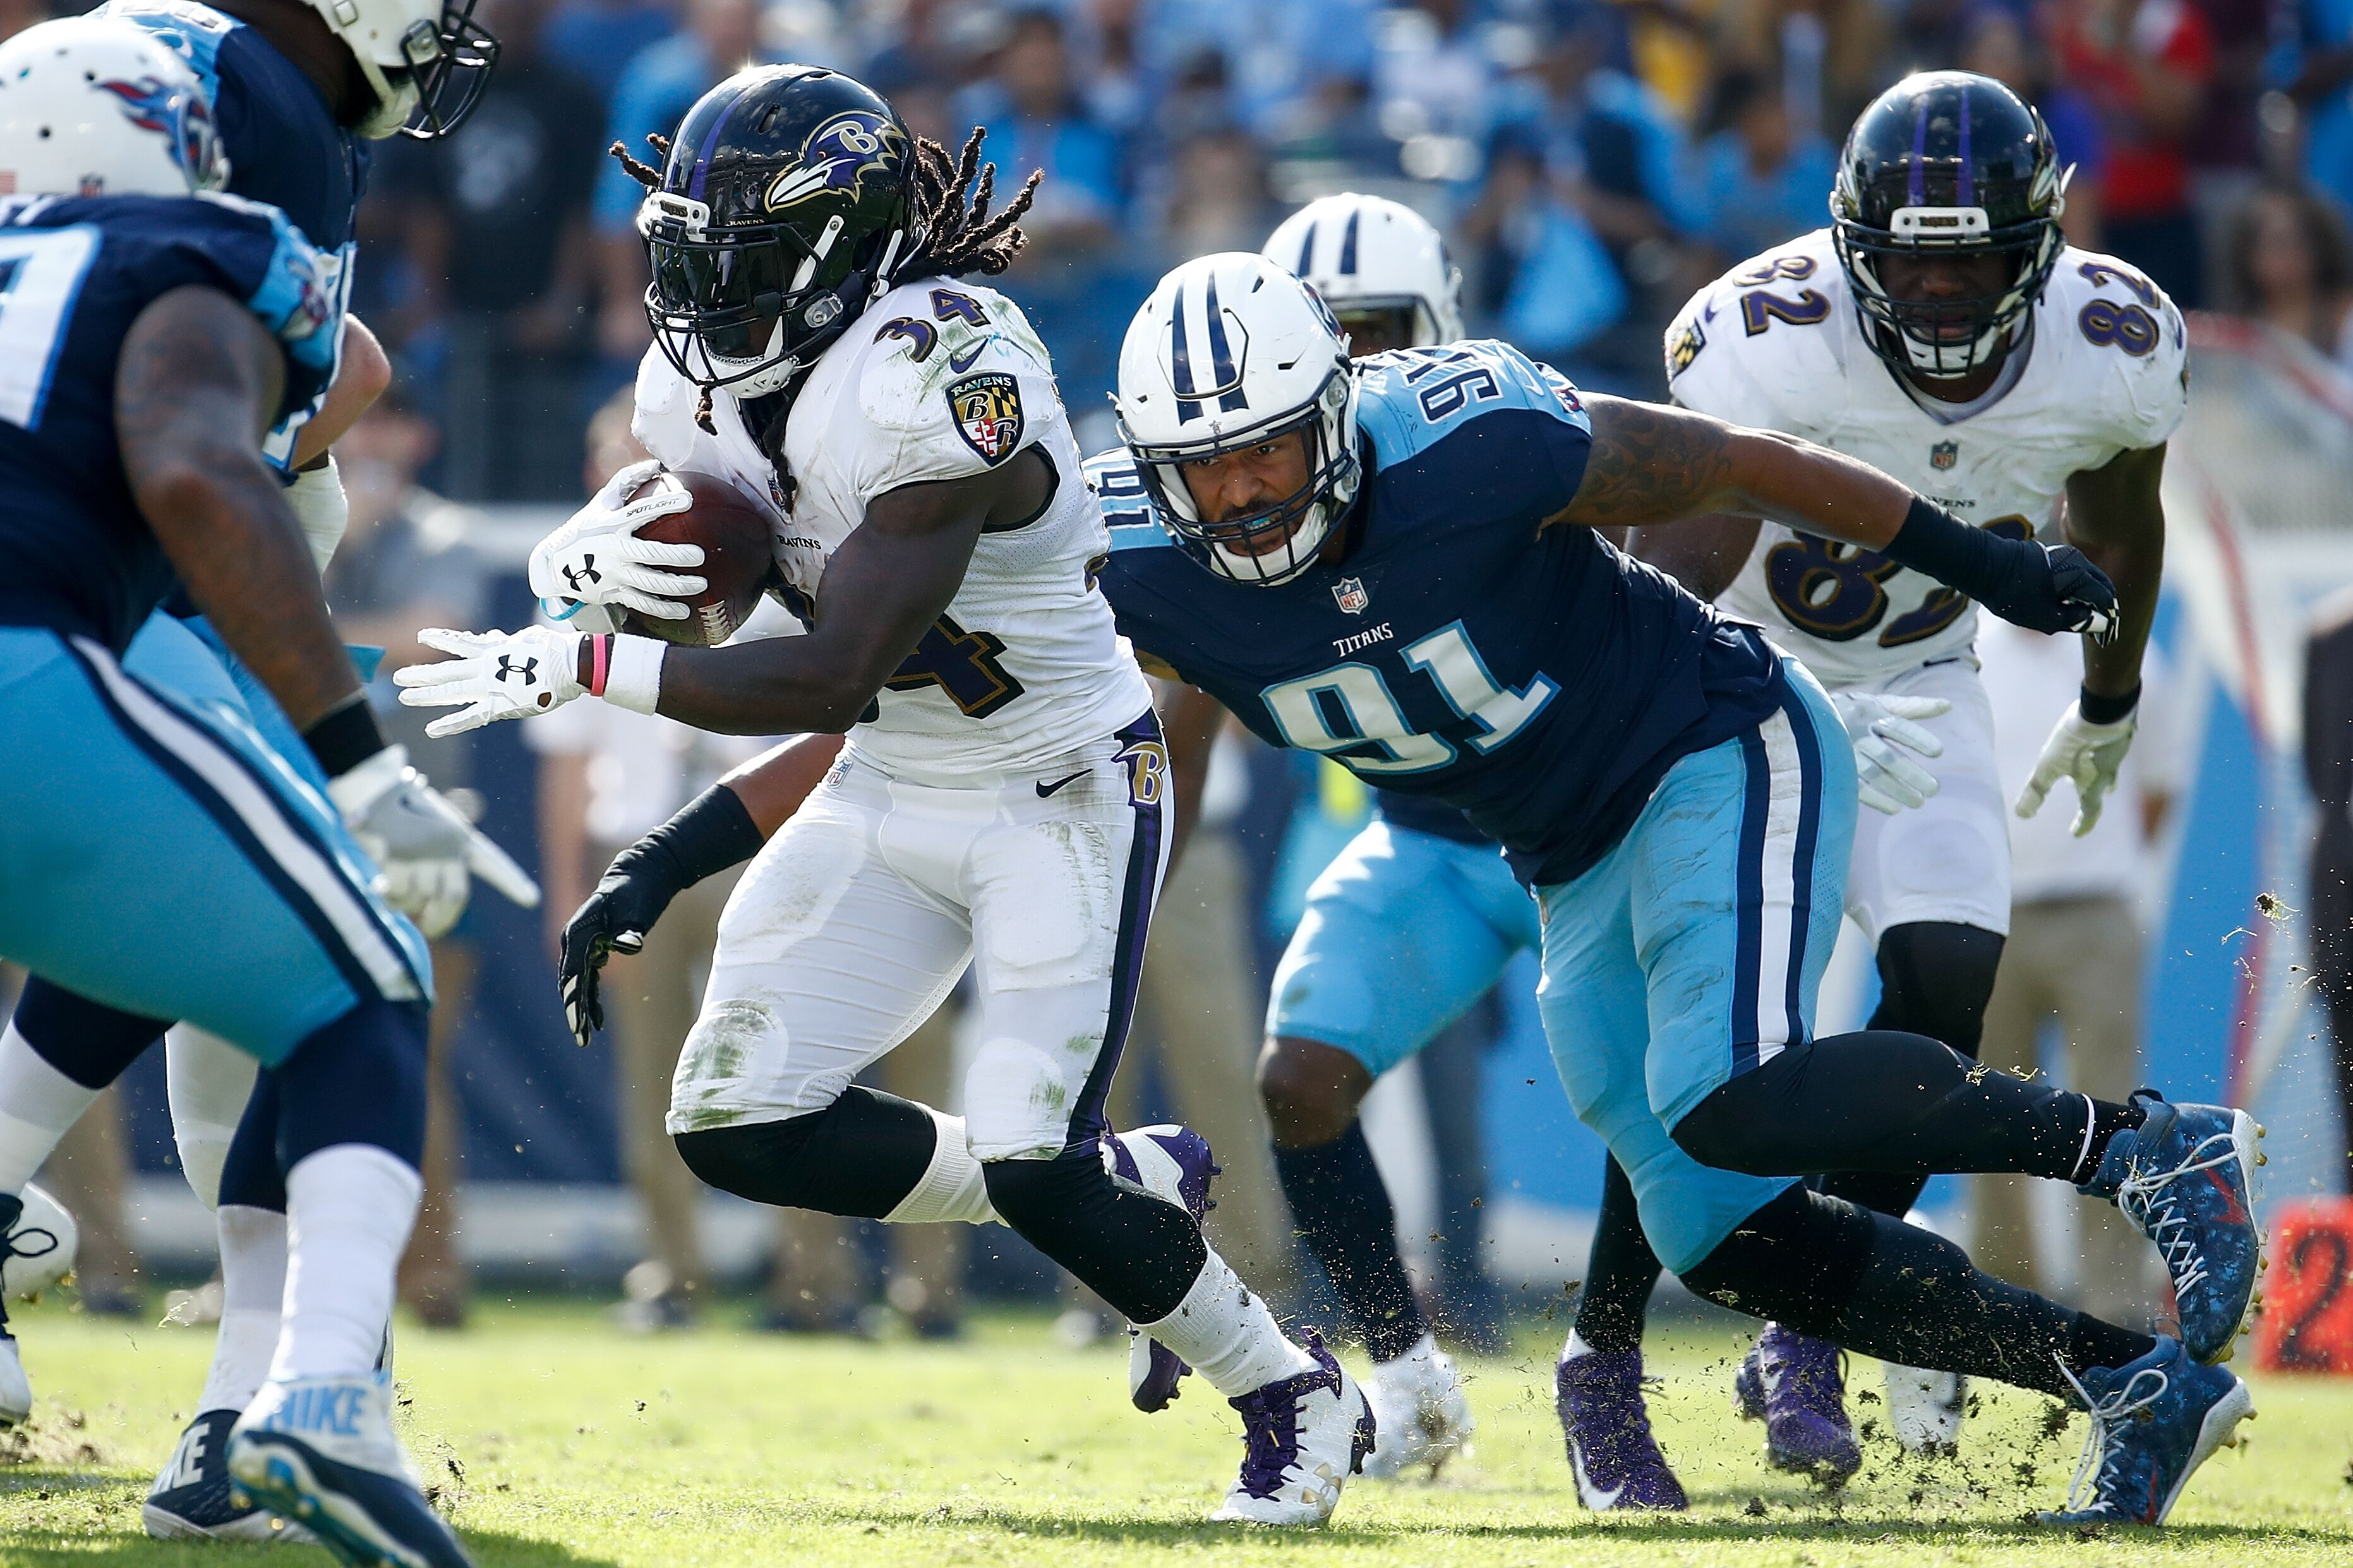 One year after signing him to a threeyear 165 million contract the Titans release nose tackle Sylvester Williams